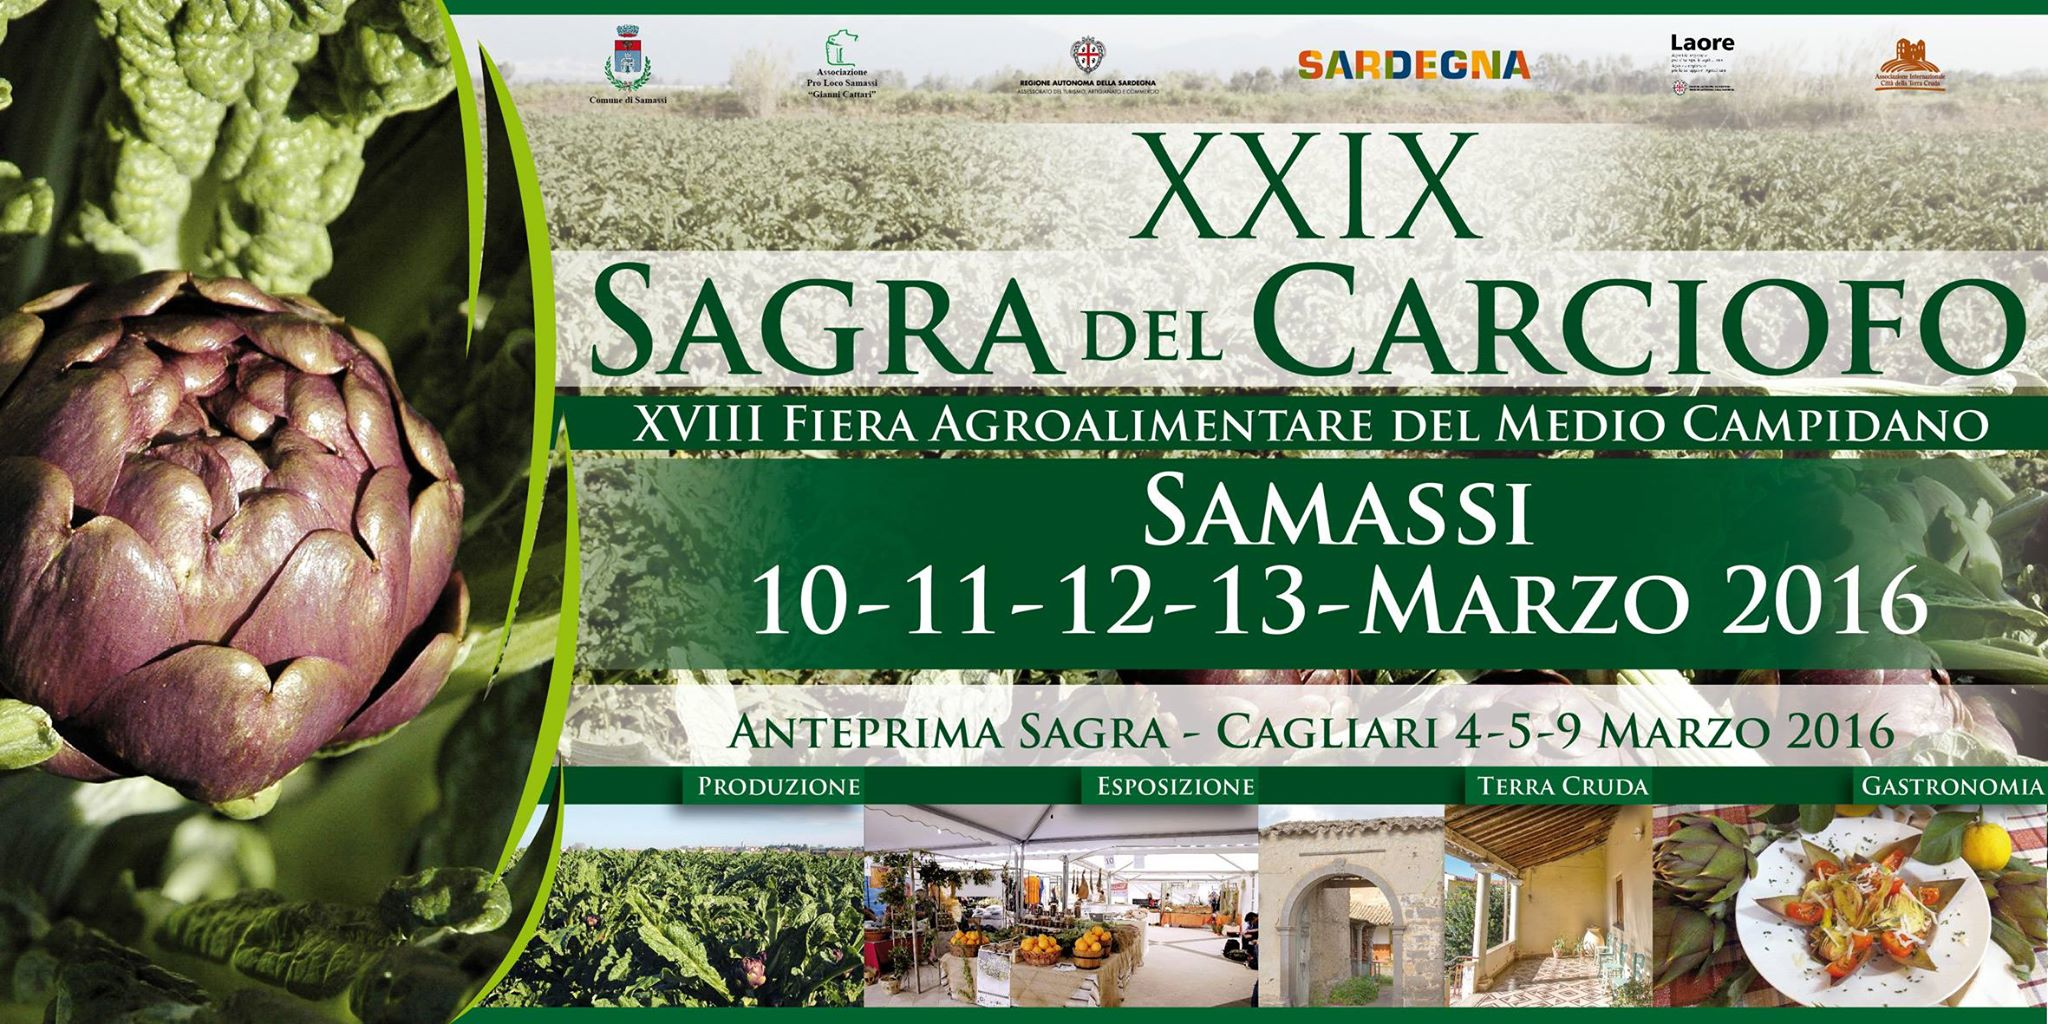 XXIX Sagra del Carciofo di Samassi dal 10 al 13 marzo 2016